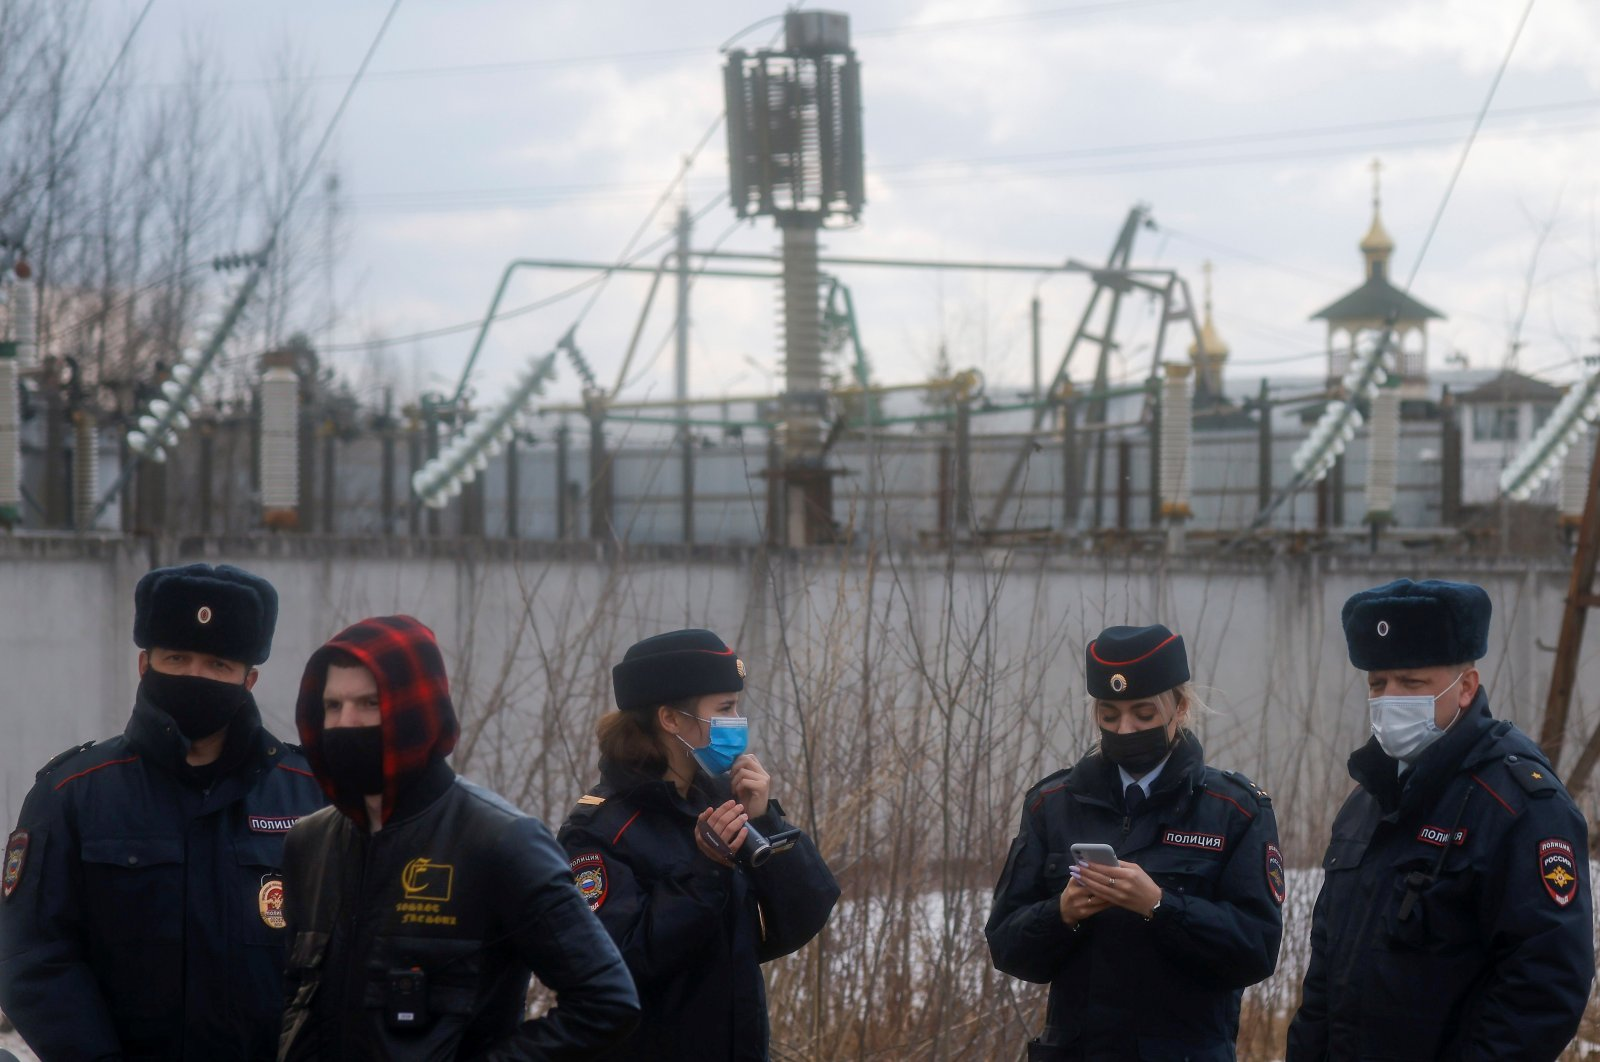 Police officers gather near the IK-2 corrective penal colony, where Kremlin critic Alexei Navalny is serving his jail term, in the town of Pokrov, Russia, April 6, 2021. (Reuters Photo)